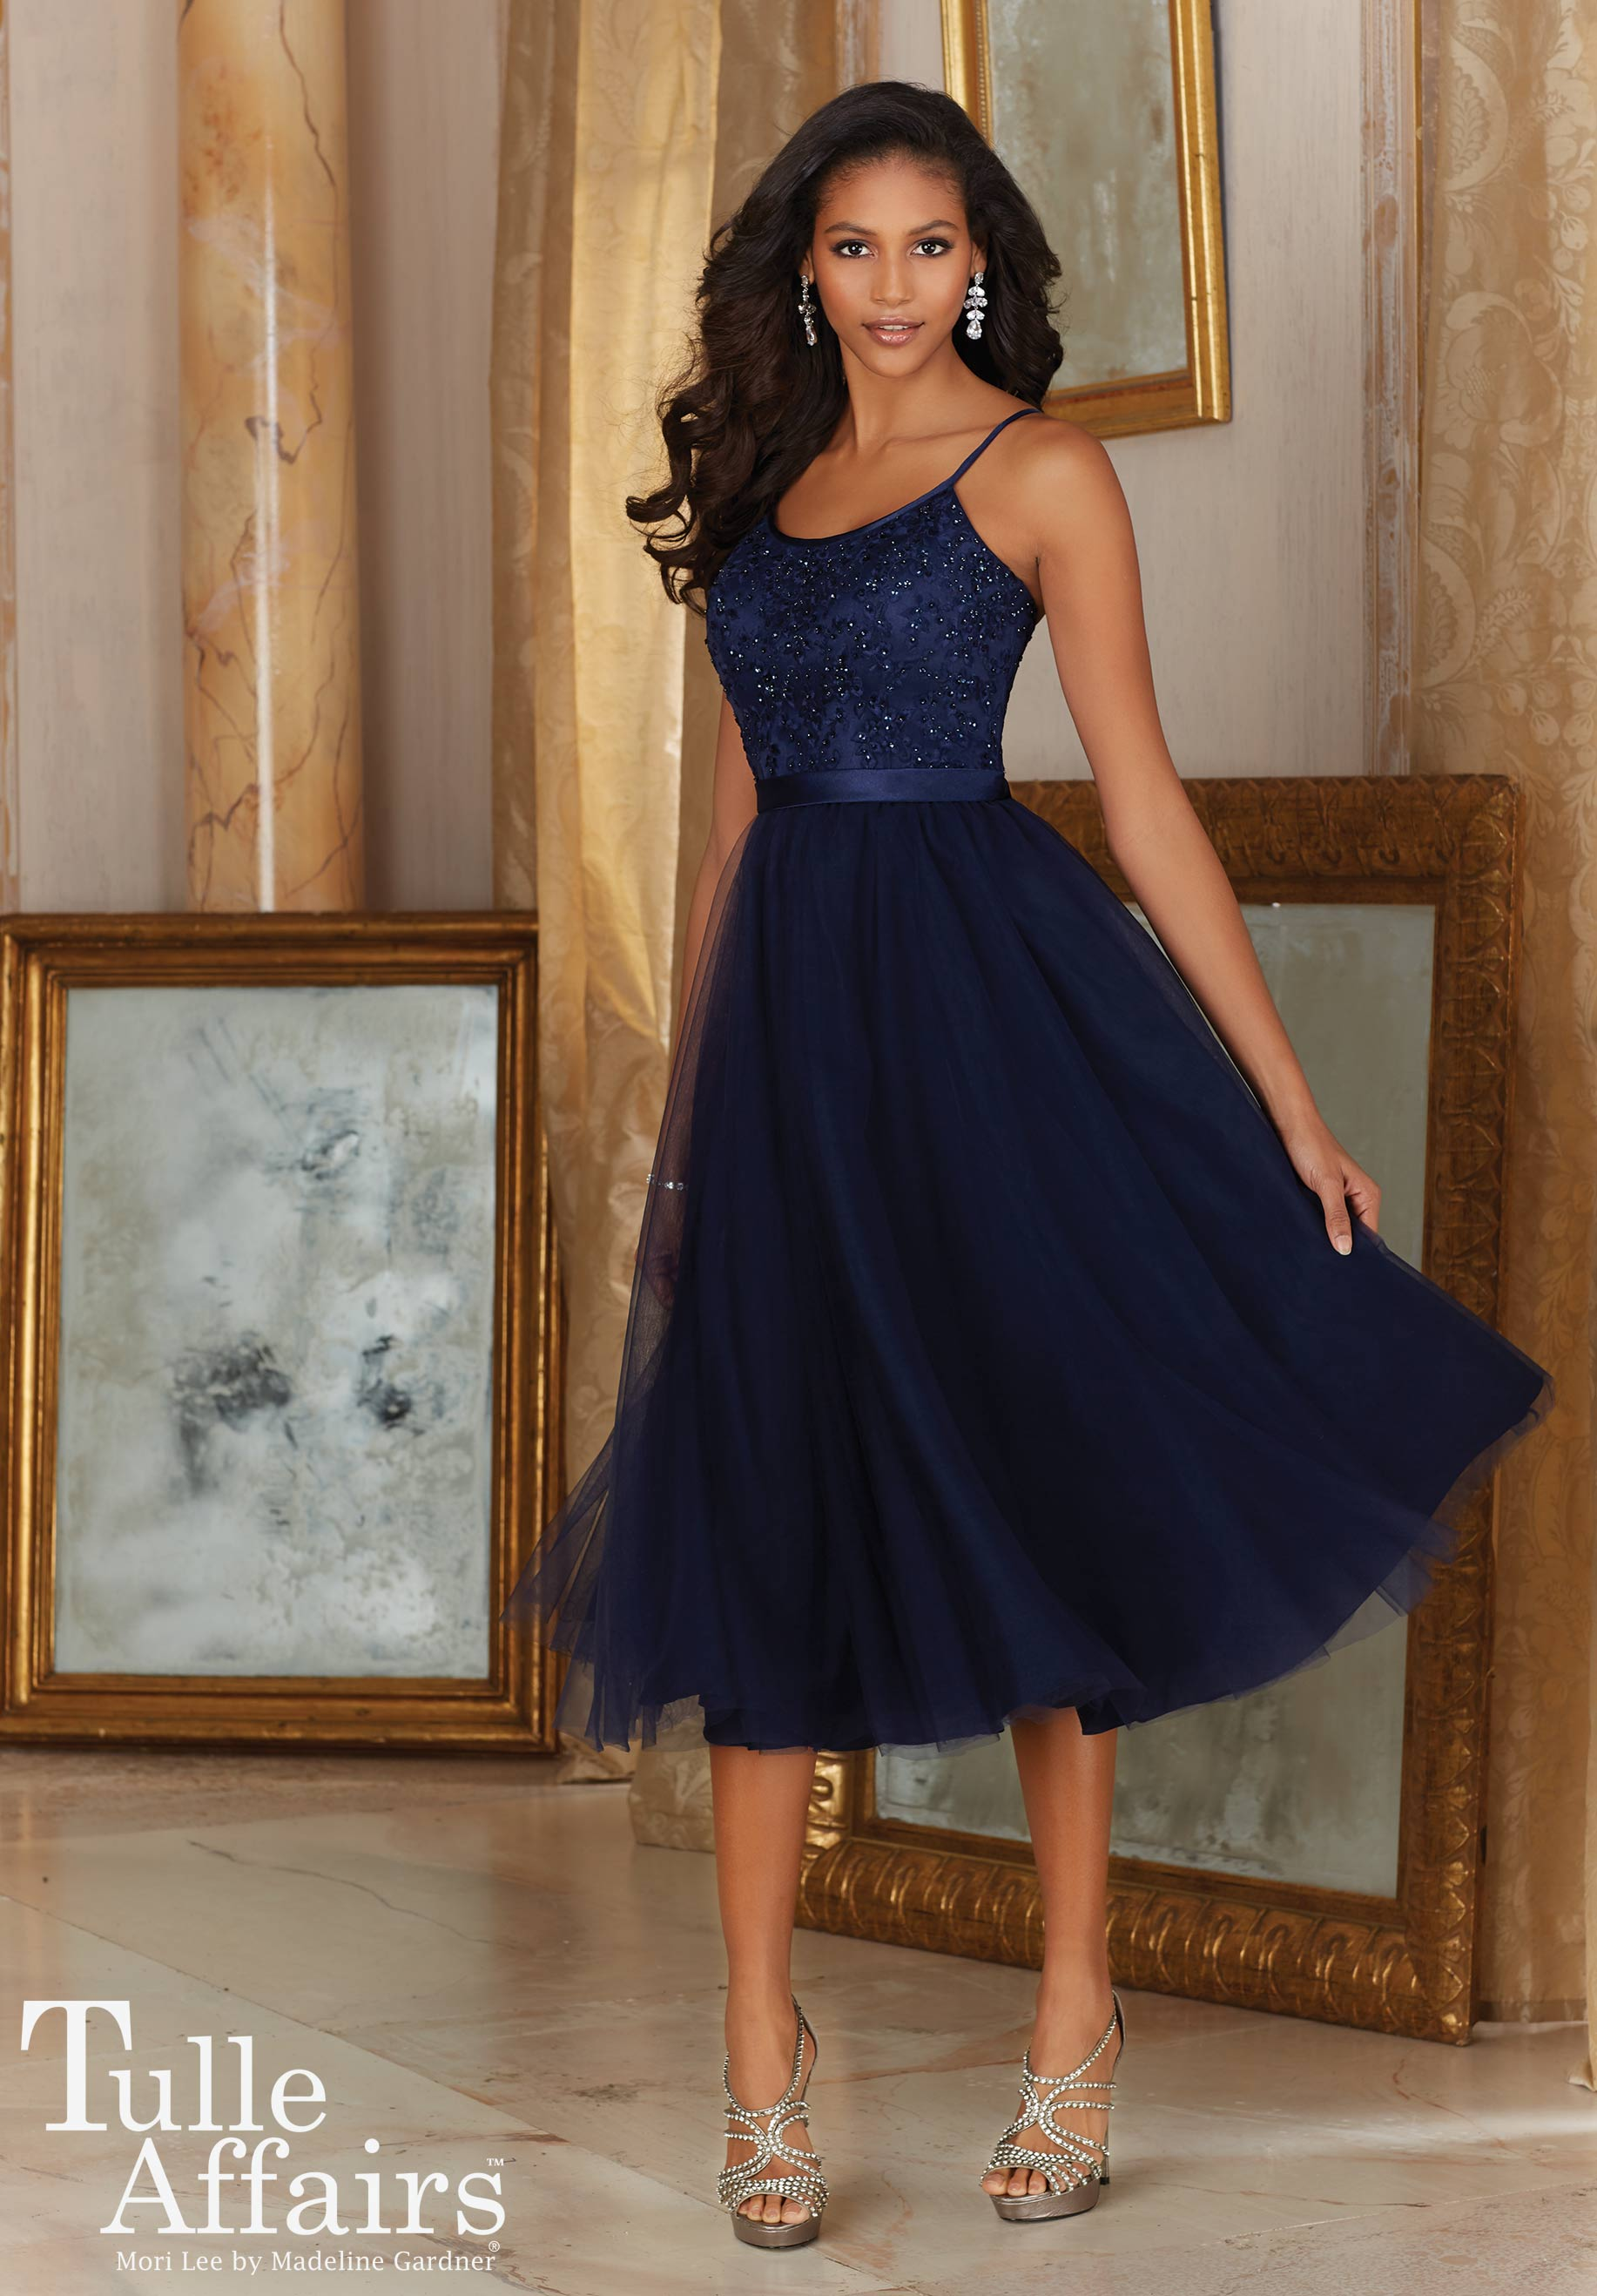 dbdb4fbf796 Morilee Bridesmaids Collection - Angelic Inspirations